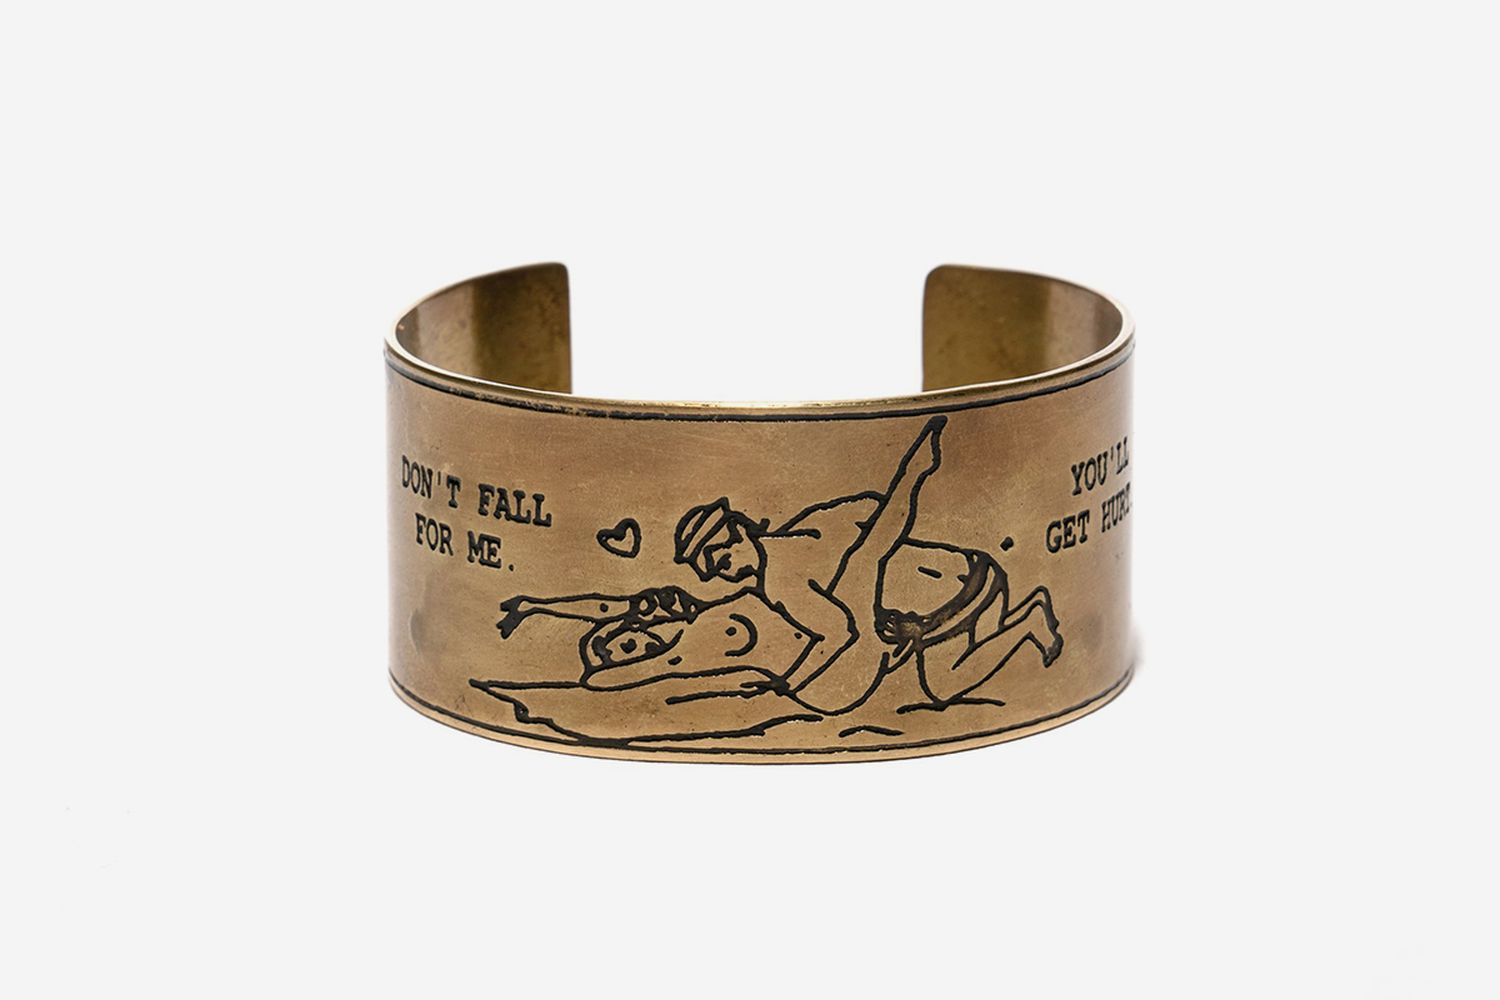 Brass Souvenir Bangle Pin Up Girl